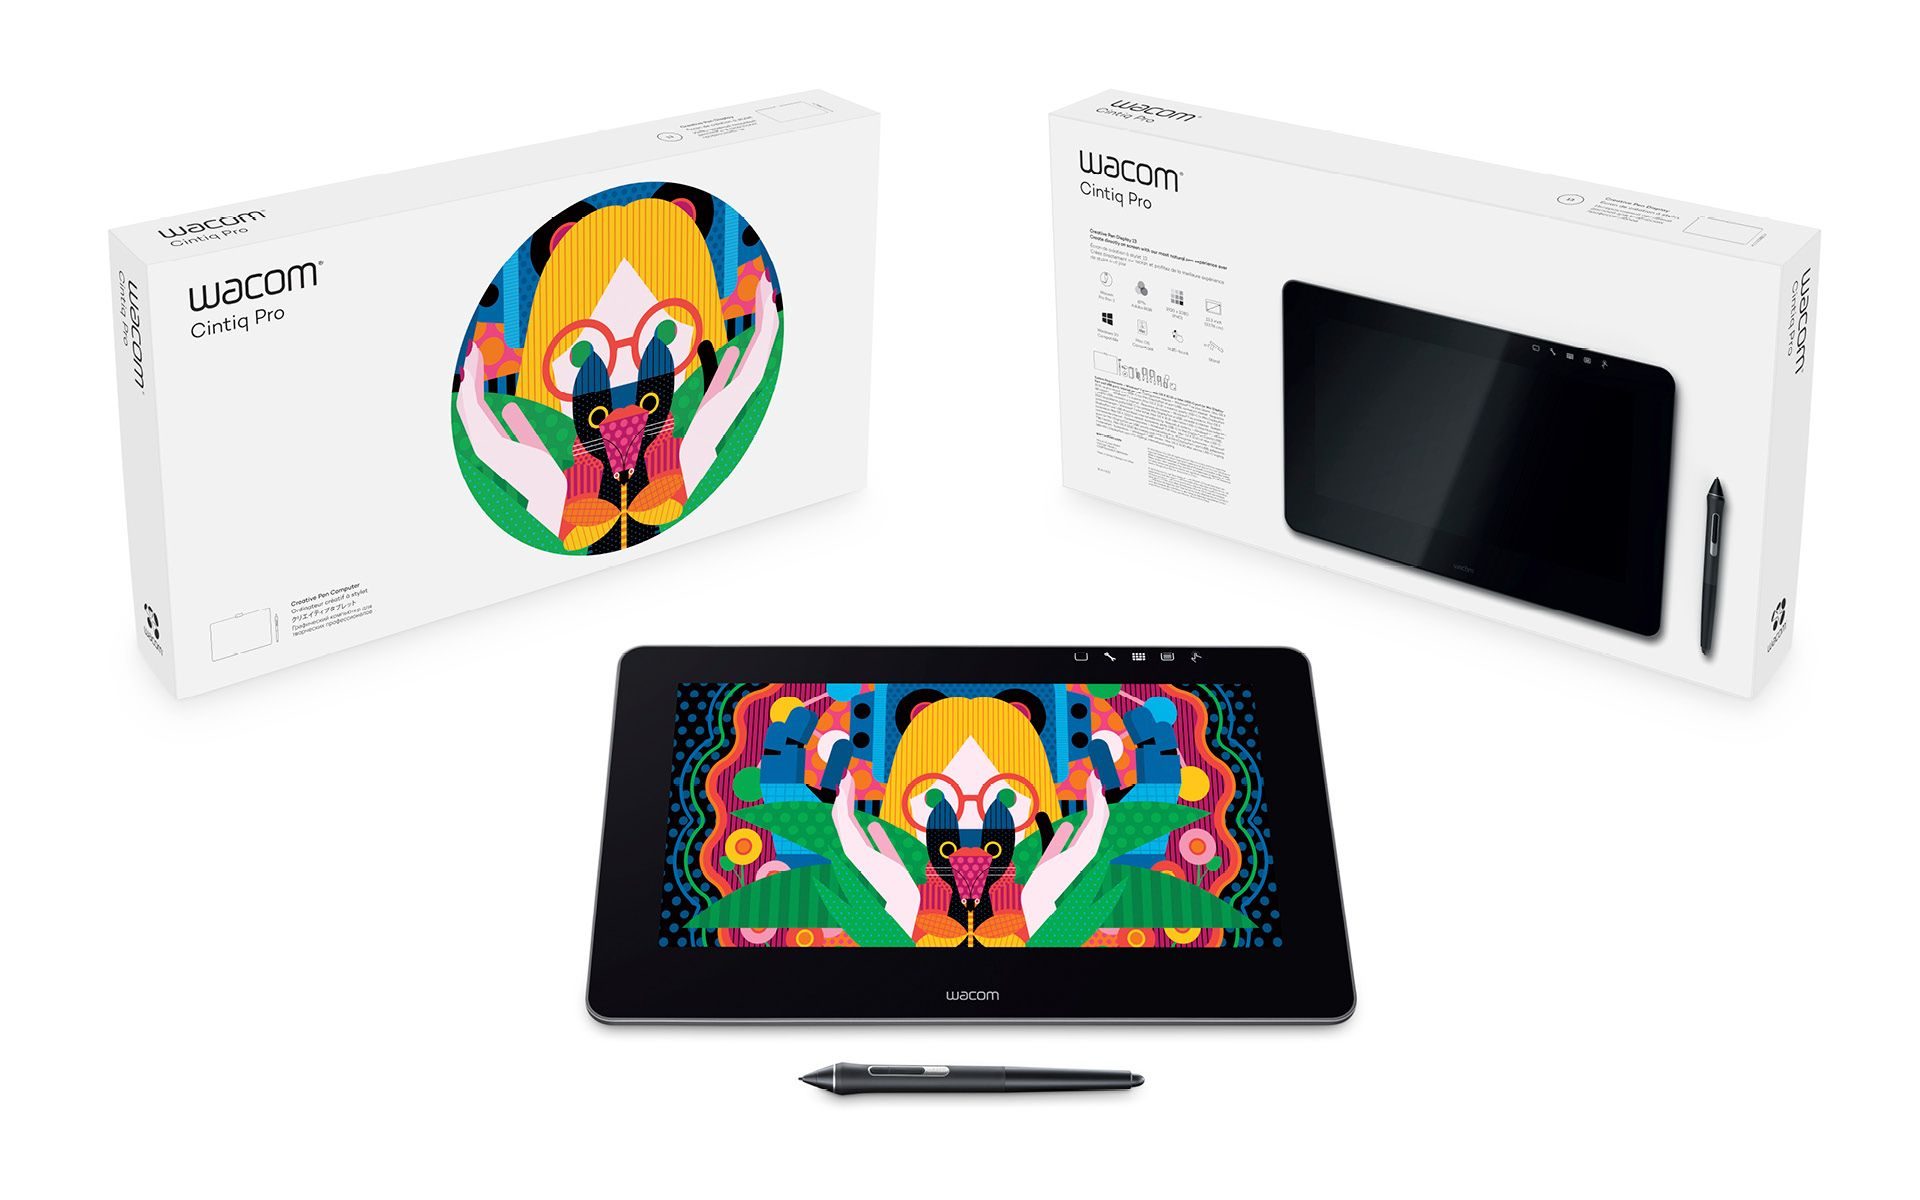 Wacom Cintiq Pro 13 Pen & Touch Grafik Tablet (DTH-1320A-EU) + Link Plus